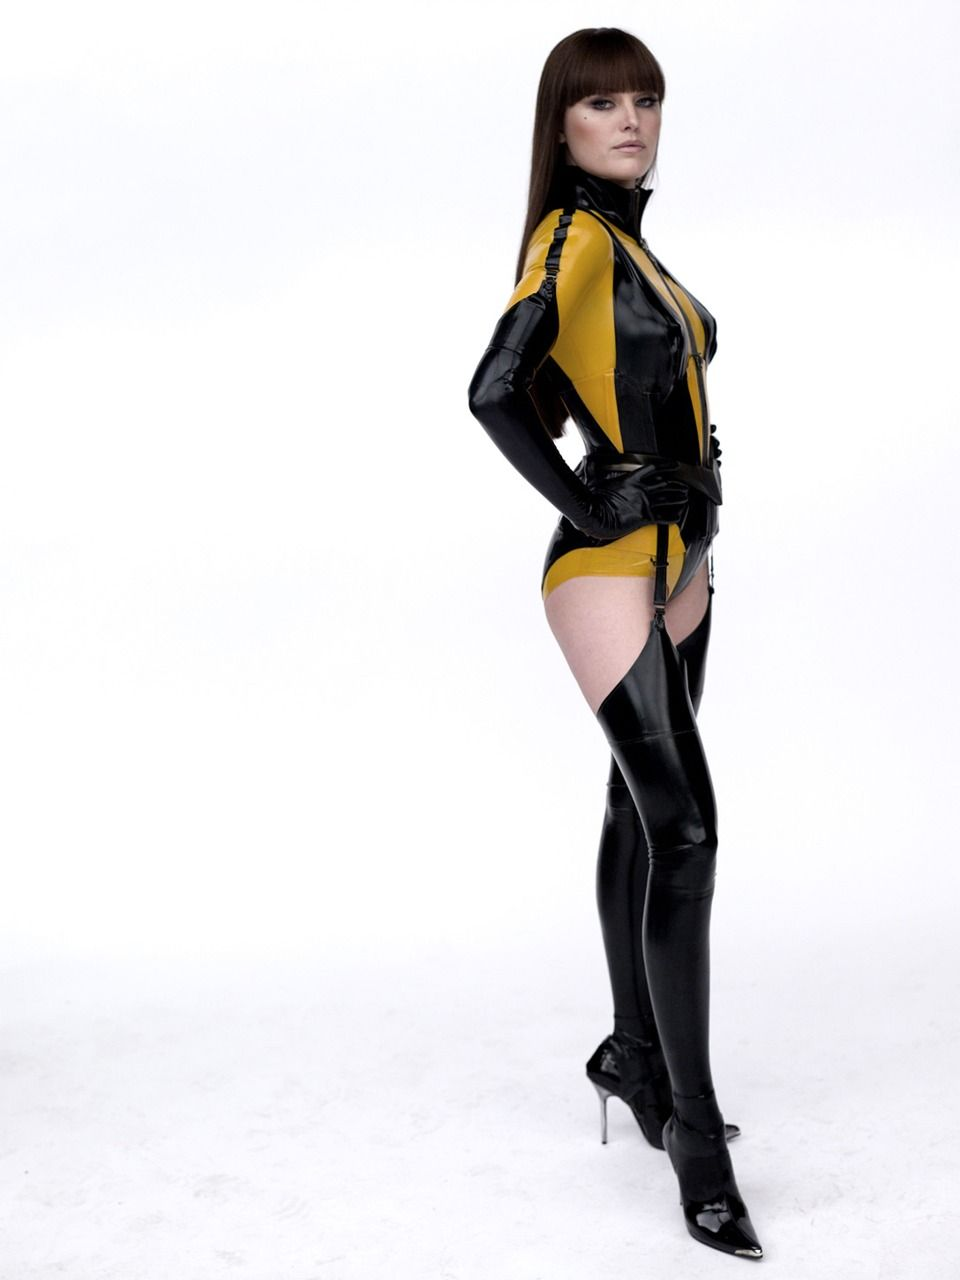 Malin Åkerman as Silk Spectre II u0026 my 2010 Halloween costume  sc 1 st  Pinterest & Malin Åkerman as Silk Spectre II u0026 my 2010 Halloween costume | Malin ...